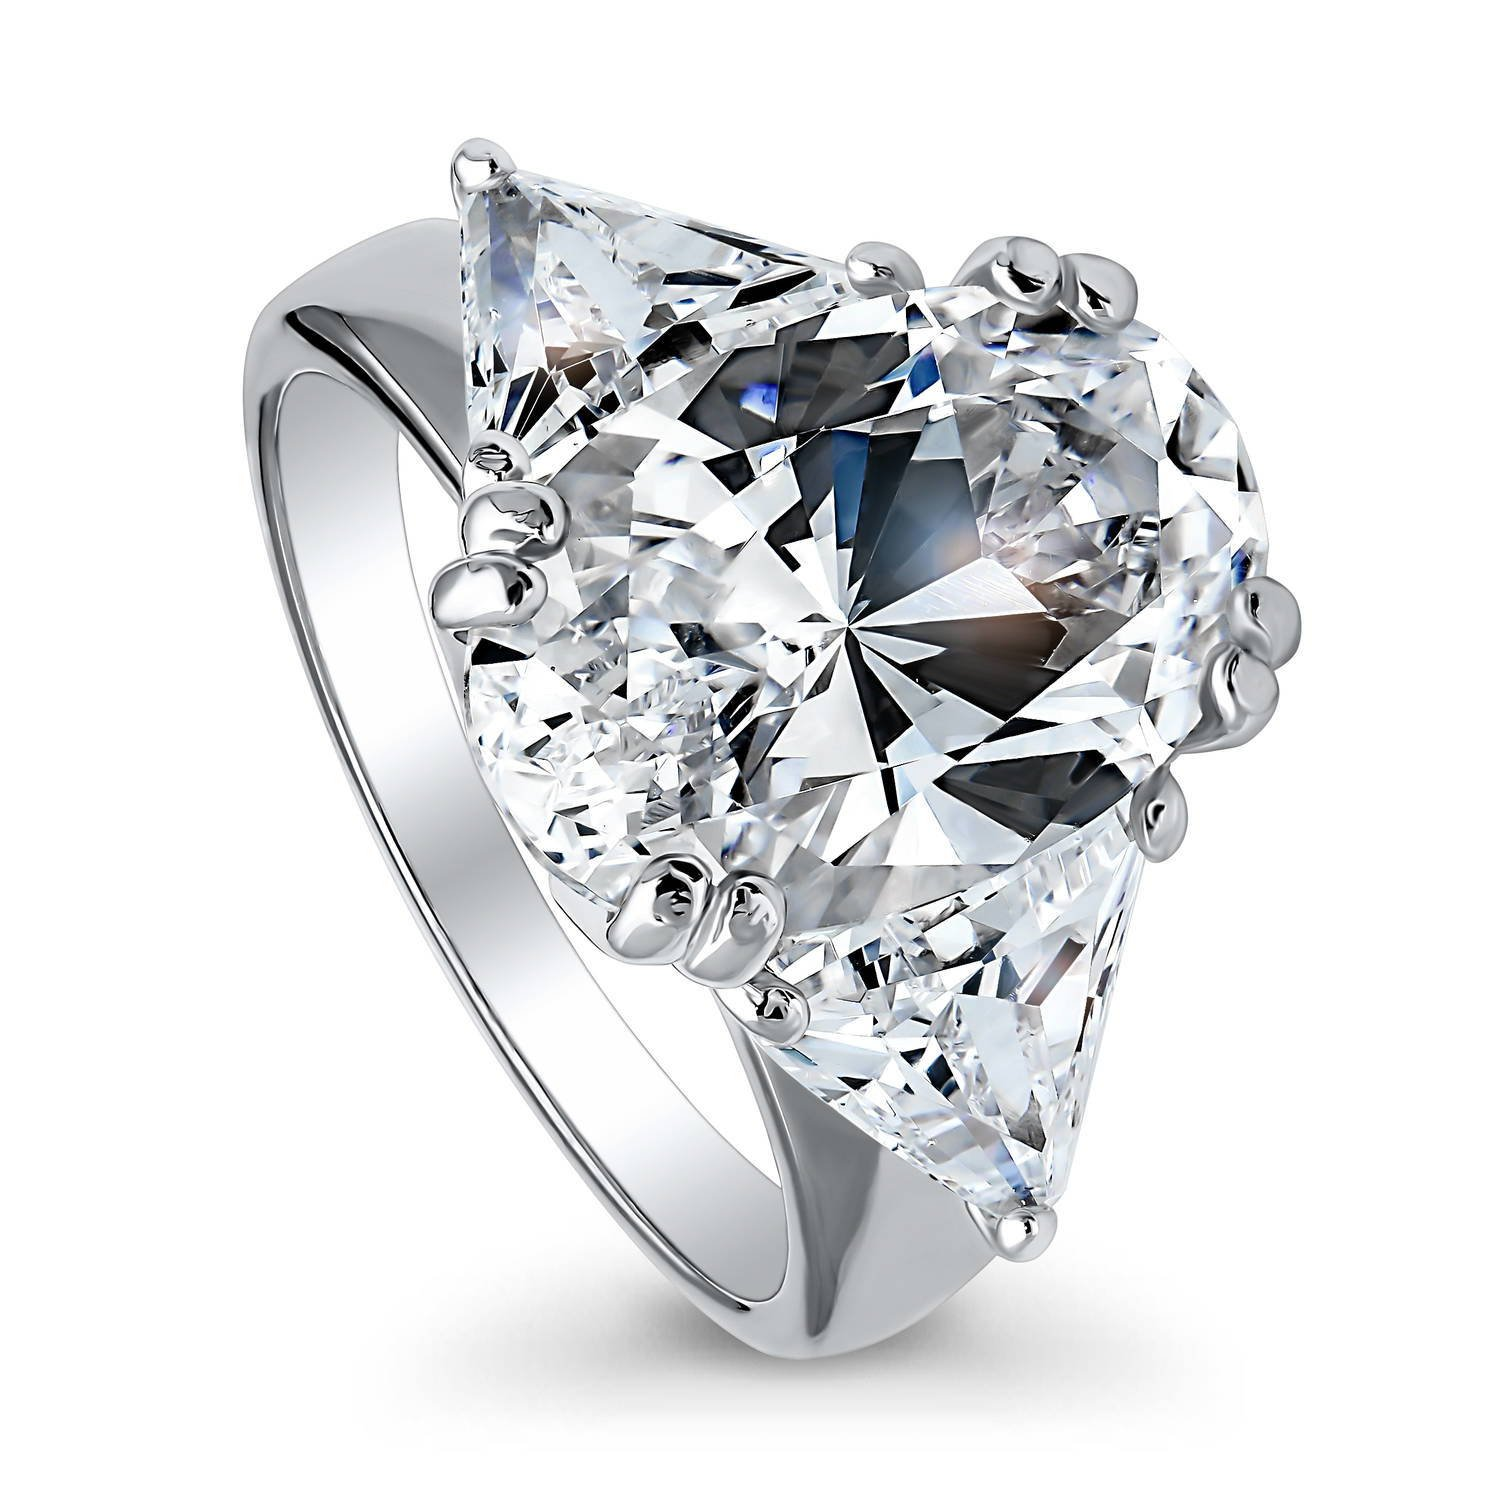 BERRICLE Rhodium Plated Sterling Silver Oval Cut Cubic Zirconia CZ 3-Stone Engagement Ring Size 8